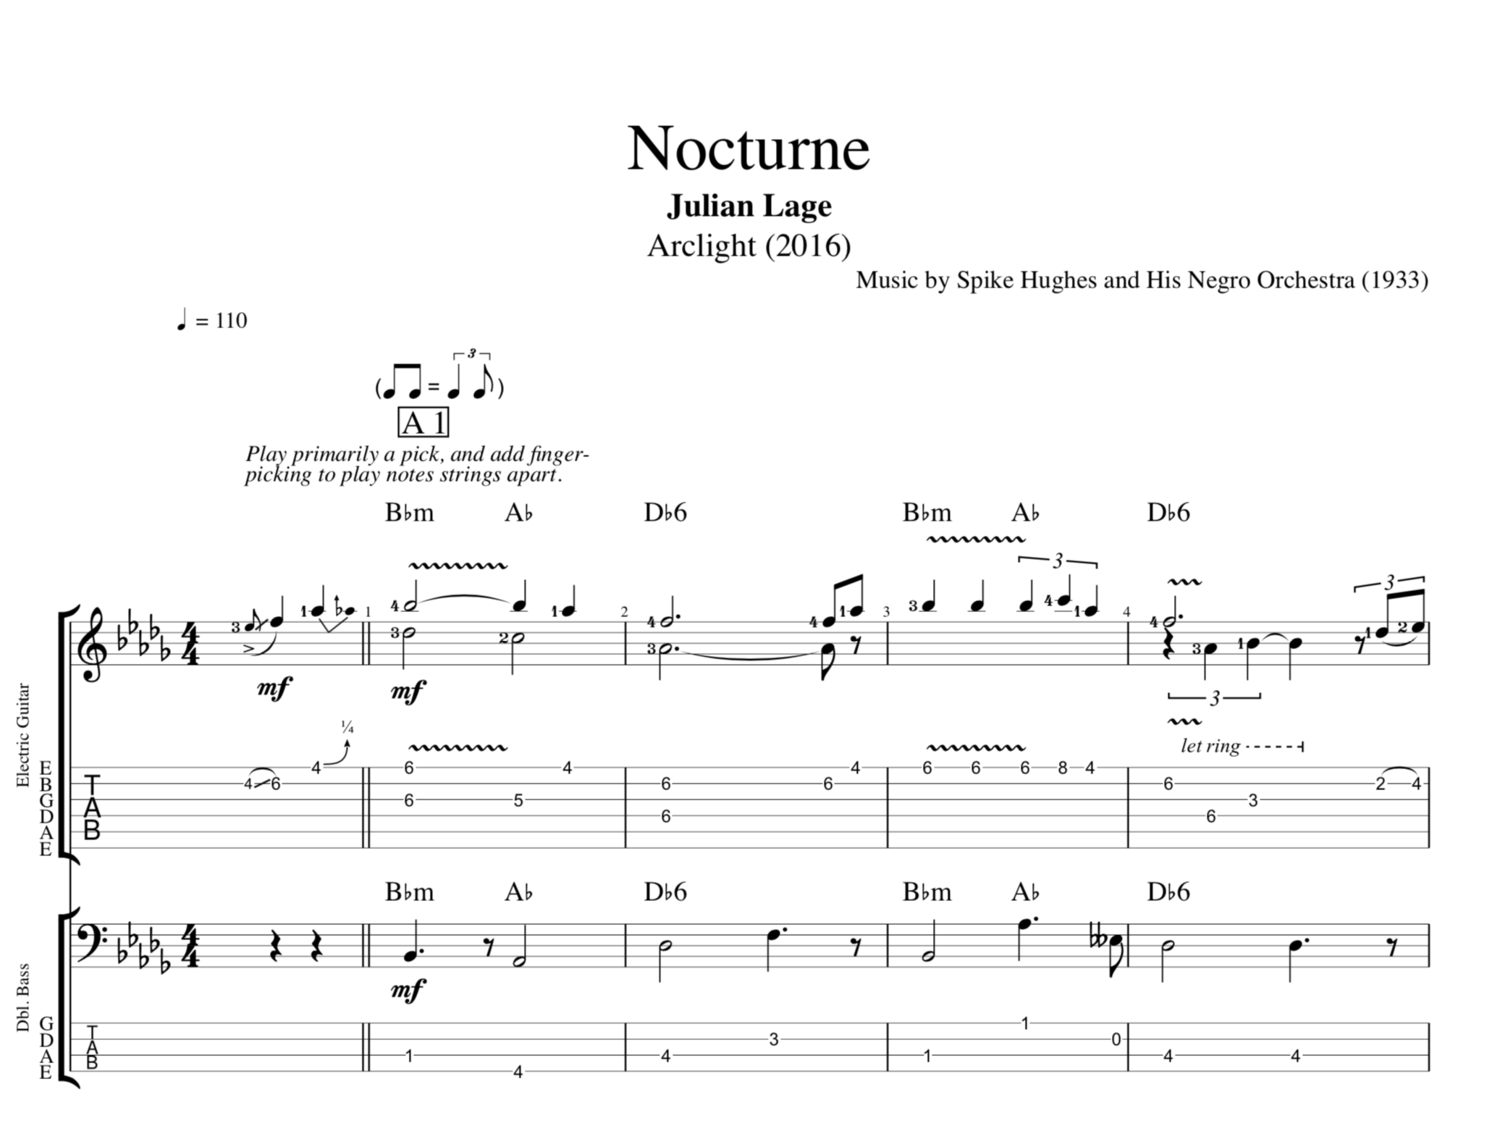 Guitar chords on sheet music images guitar chords examples nocturne by julian lage guitar bass lead sheet tabs nocturne by julian lage guitar bass lead hexwebz Choice Image